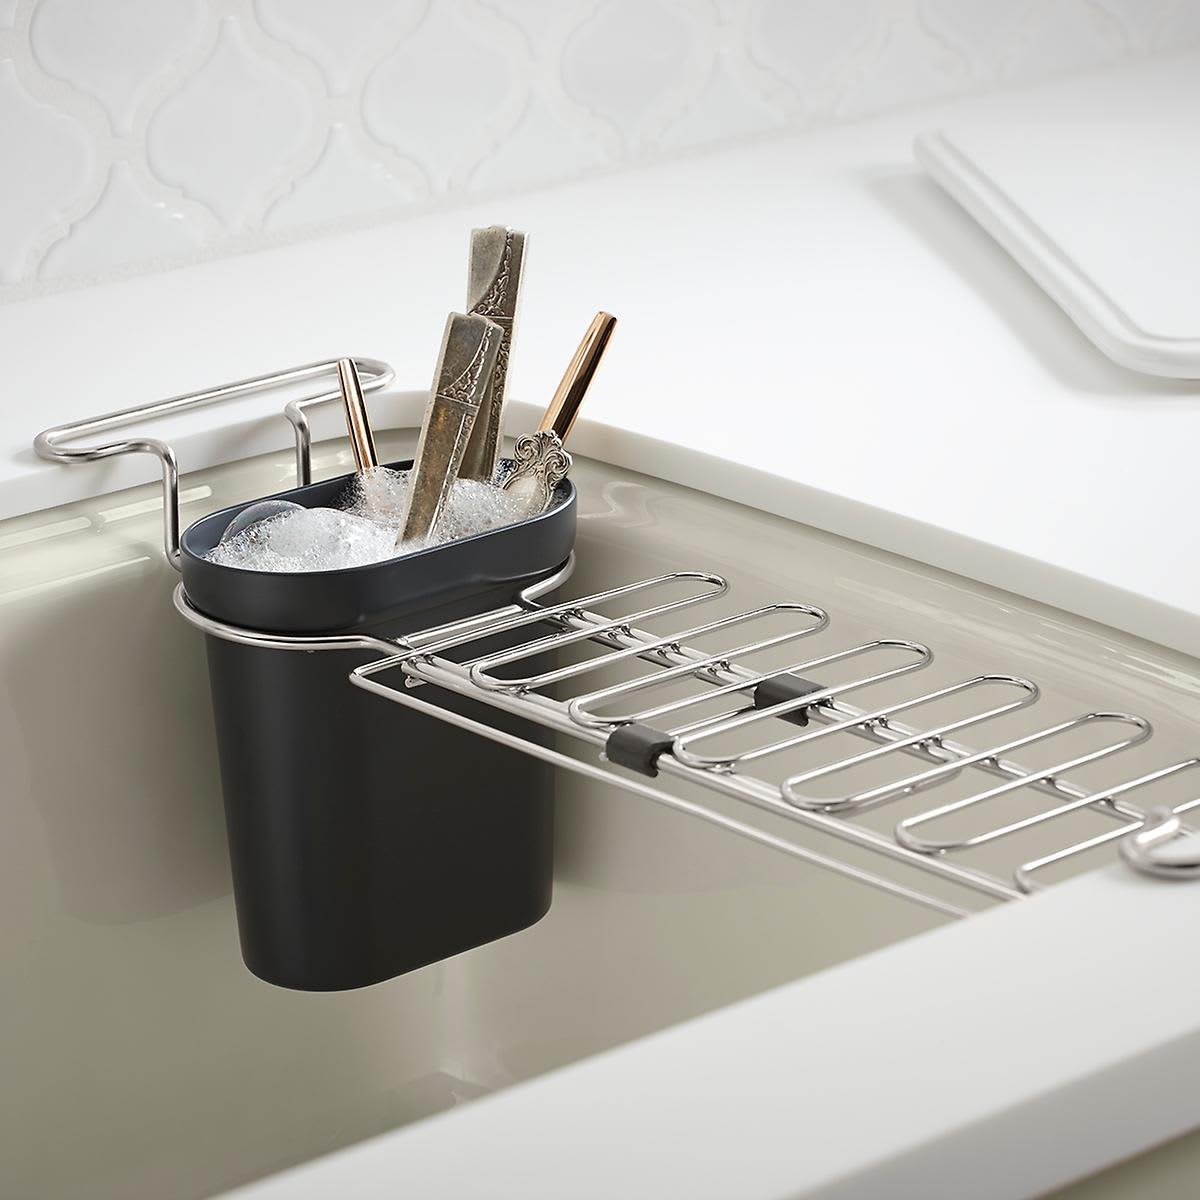 Kohler chrome kitchen sink utility rack 24 99 at the container store image credit the container store